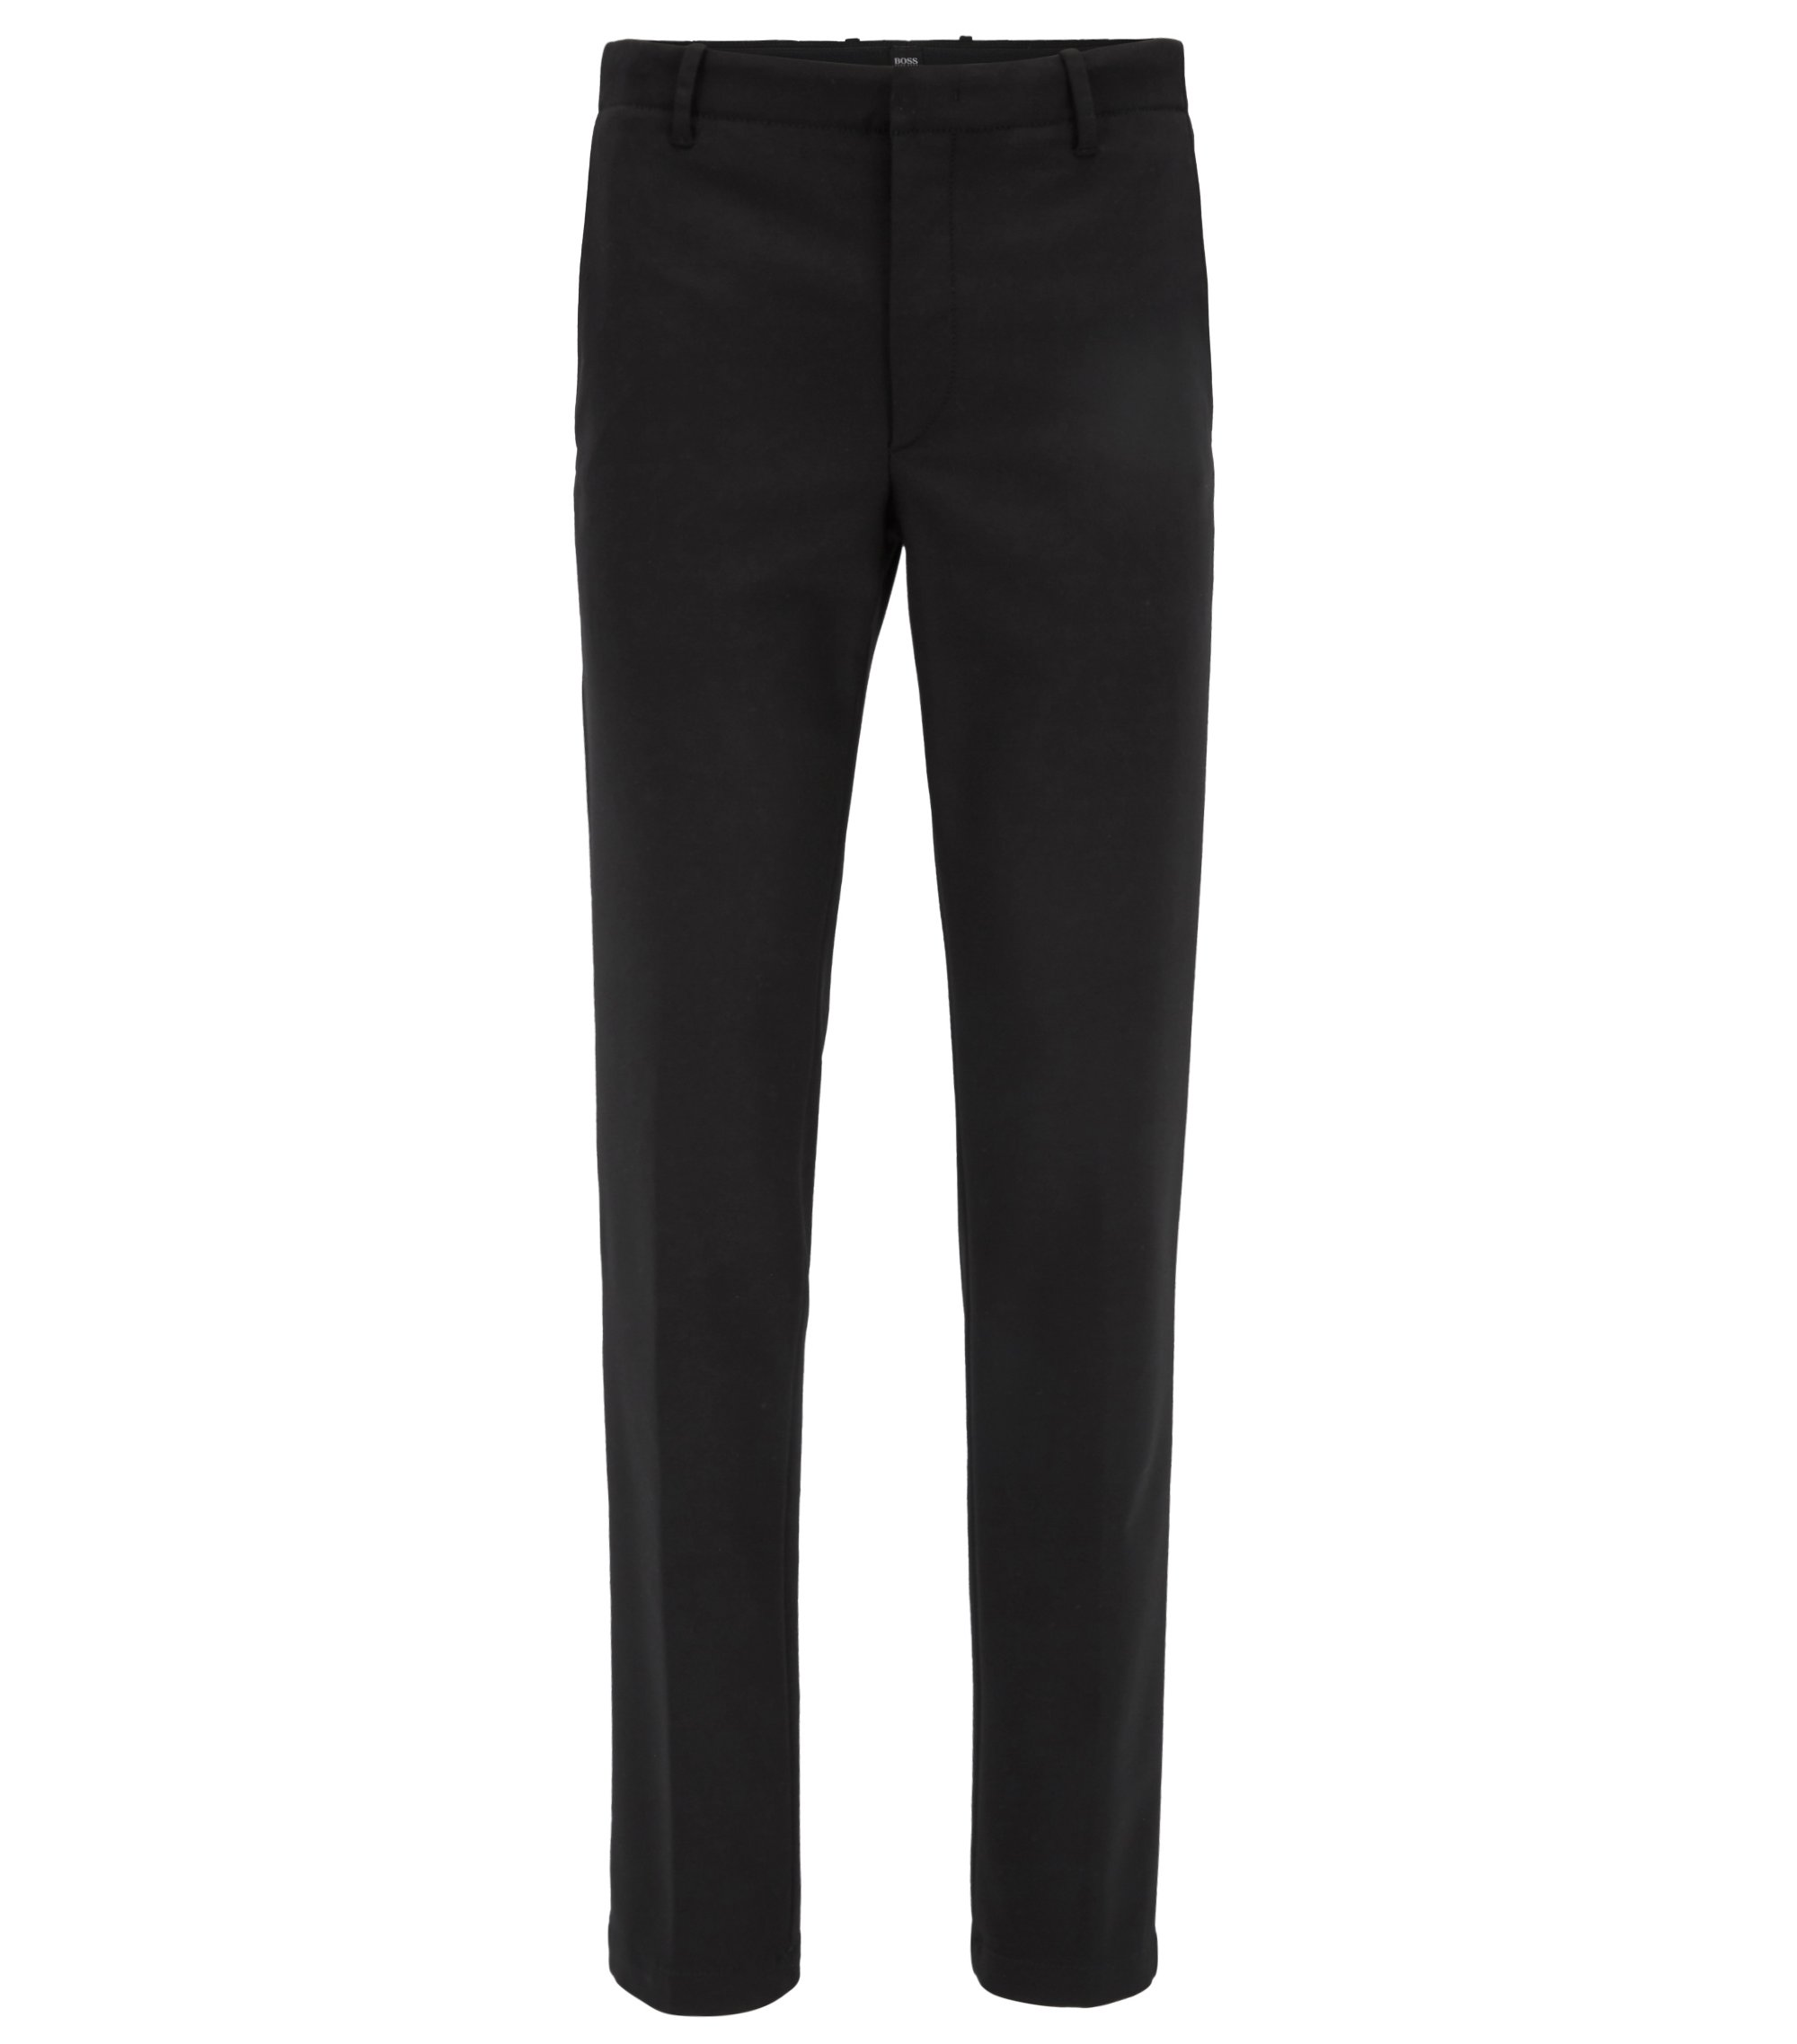 Mercedes-Benz Cotton Blend Pant, Slim Fit | Kaito MB W, Black